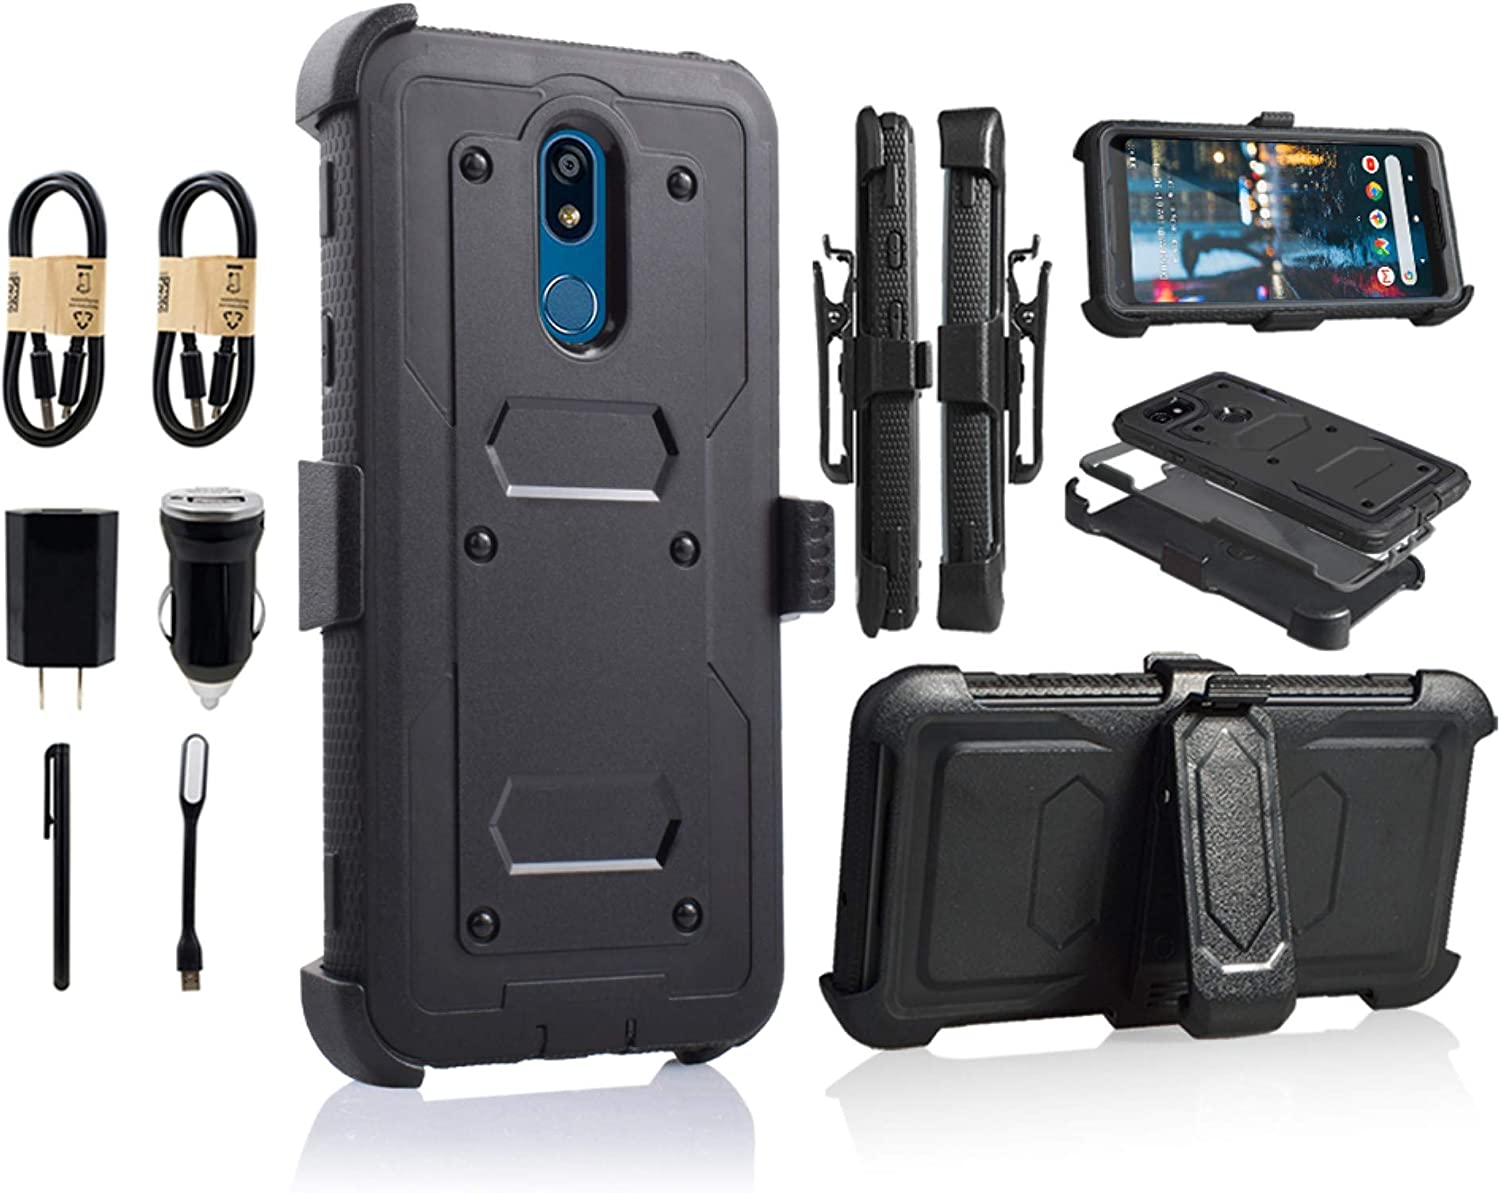 for LG Stylo 5 Case,LG Stylo 5 Phone Case with Kickstand,[Built-in Screen Protector] Heavy Duty Full-Body Armor Swivel Belt Clip Protective Case Cover [Accessory Pack] (Black)